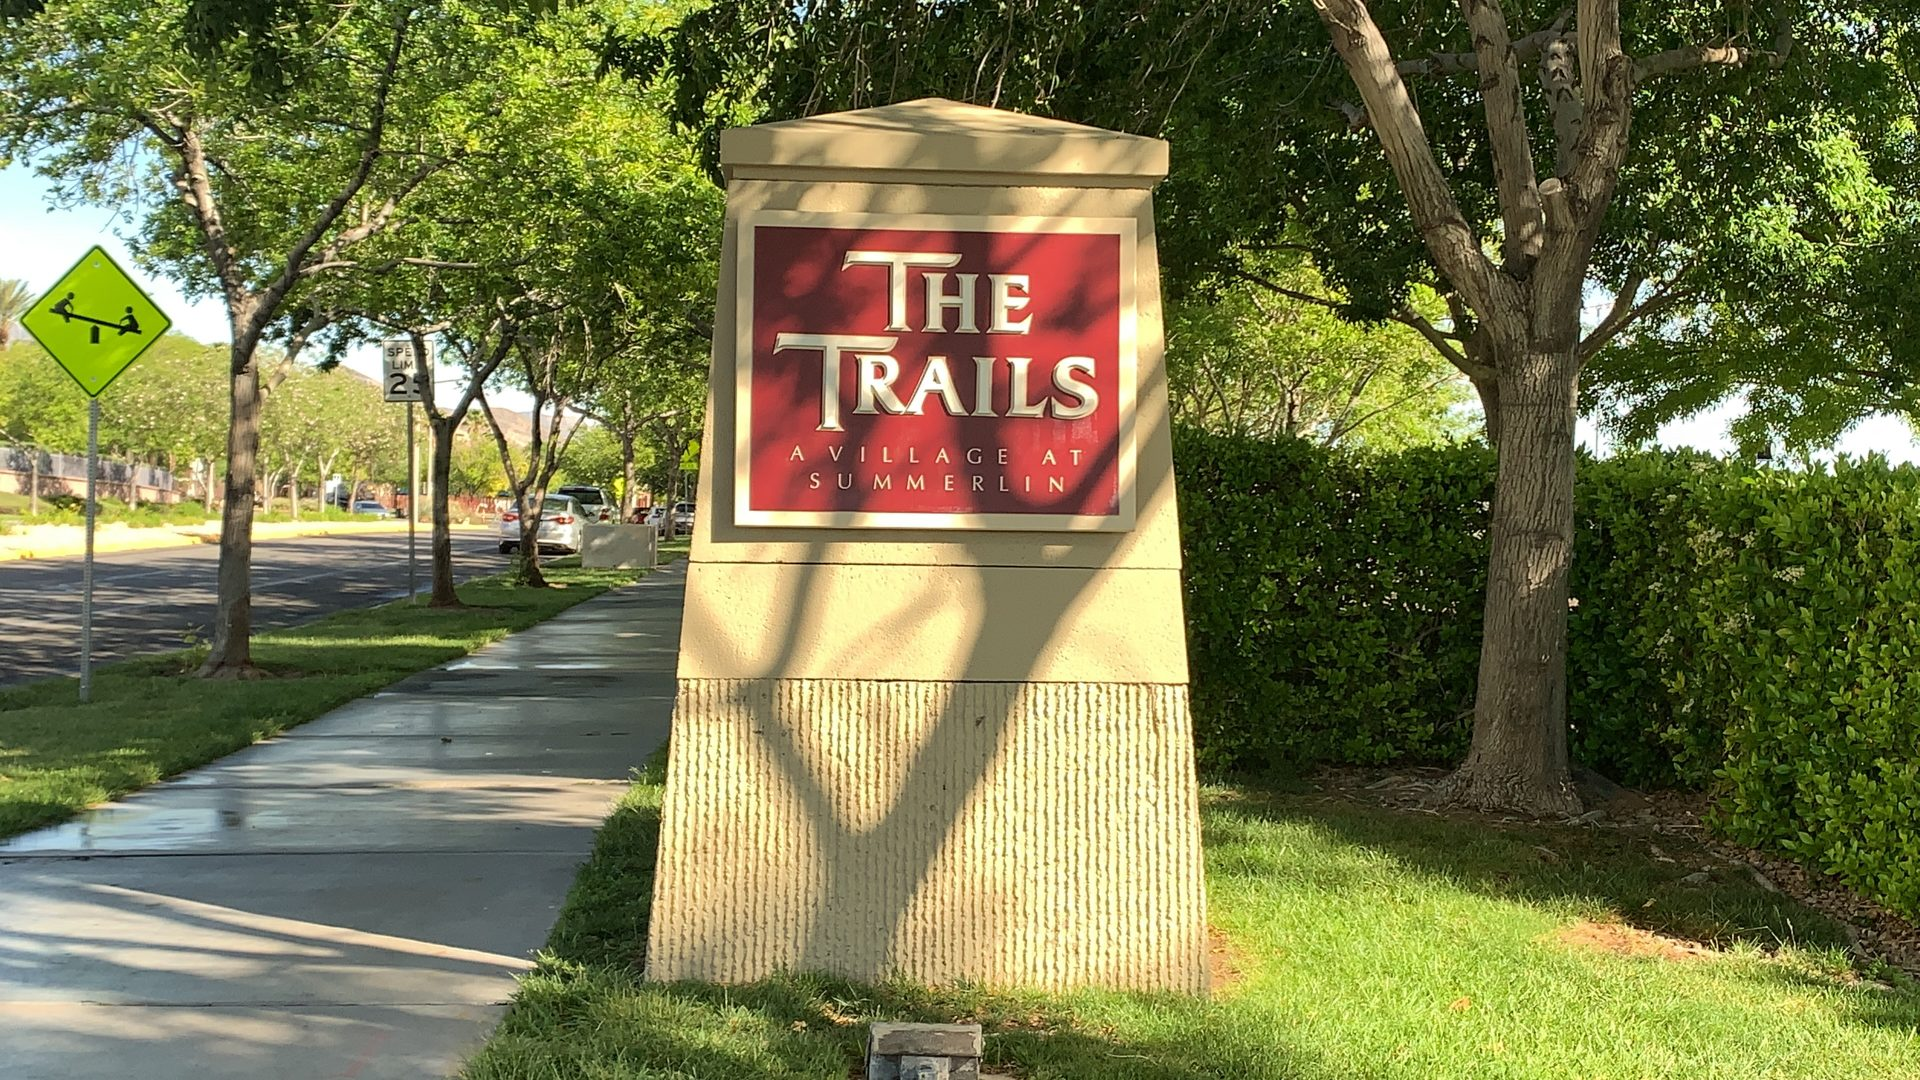 The Trails